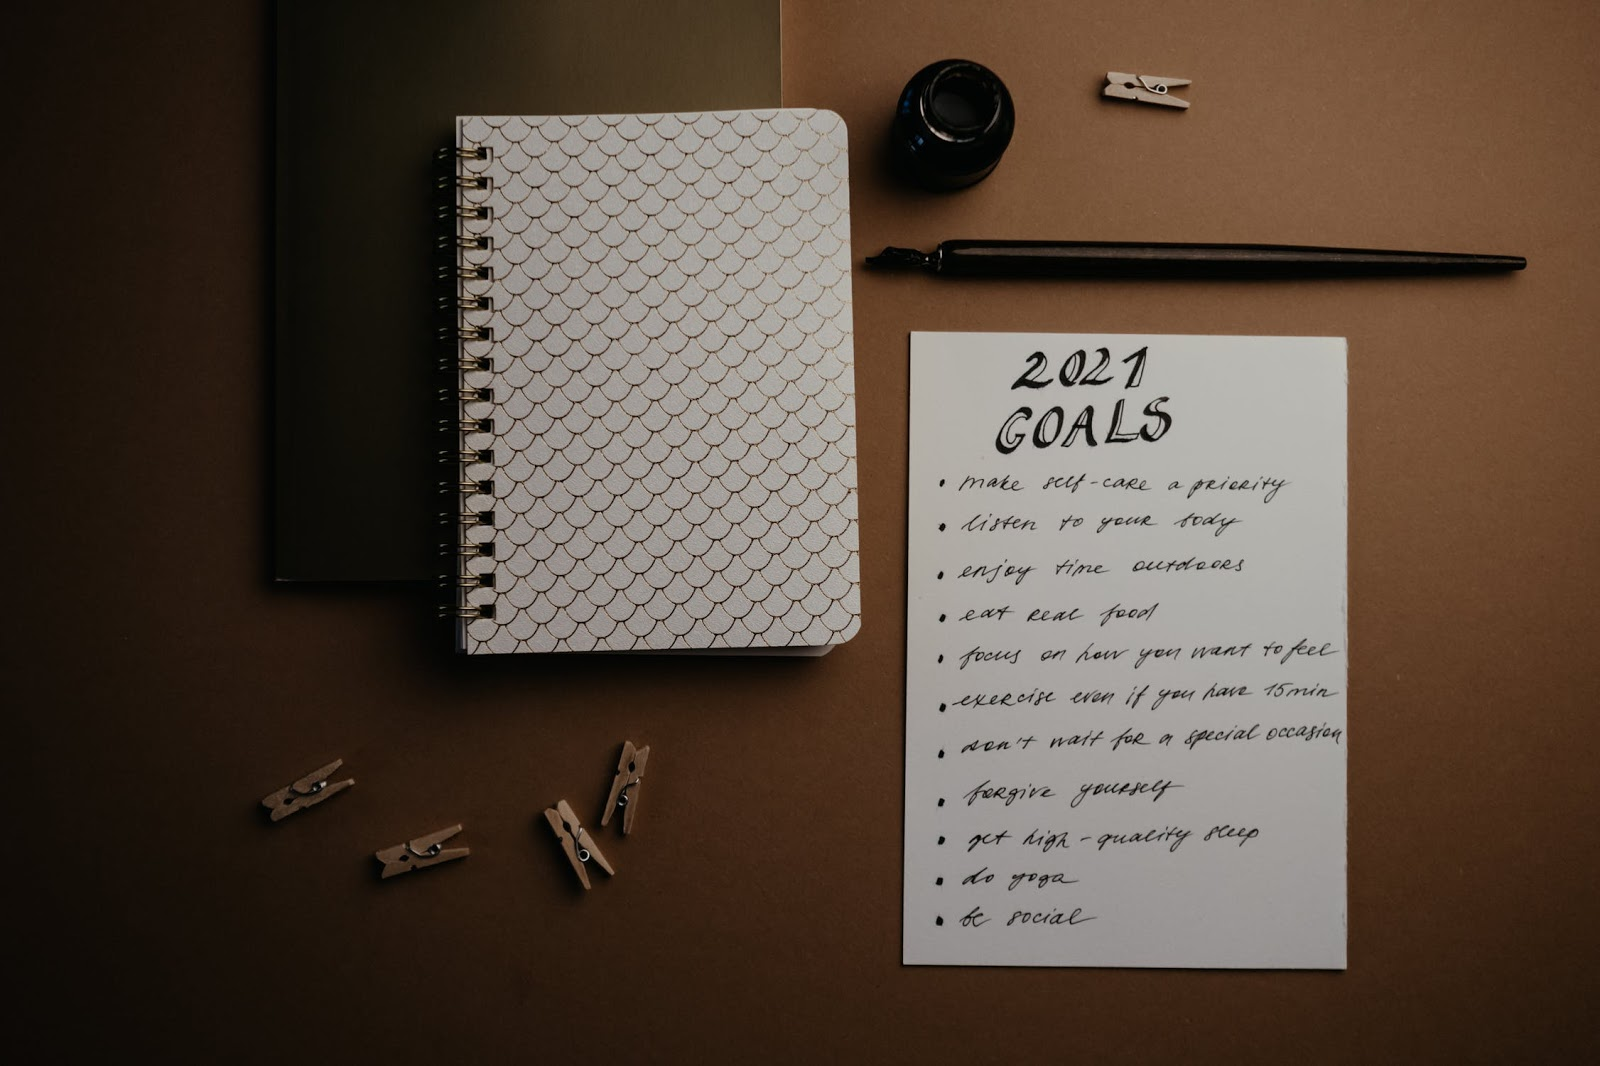 A list of goals for 2021 written on a piece of paper that is lying on a desk next to a journal and a fountain pen.